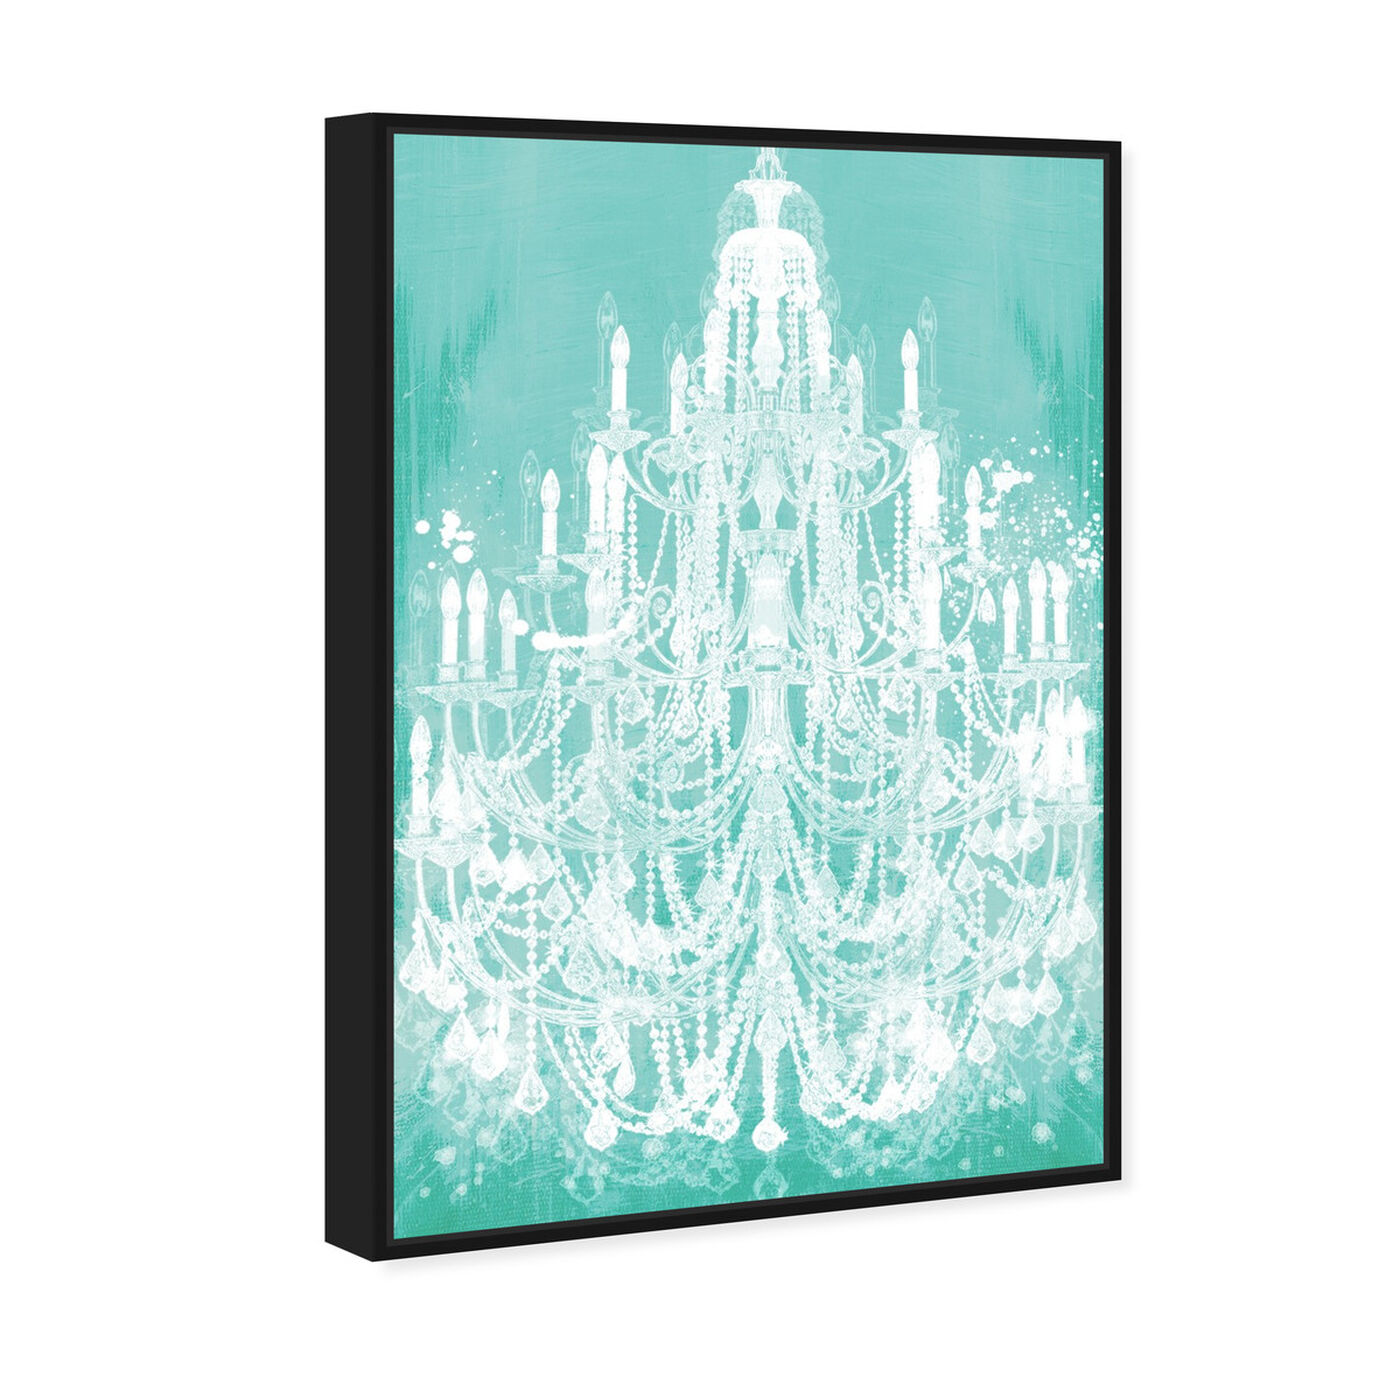 Angled view of Privee Diamonds Mint featuring fashion and glam and chandeliers art.